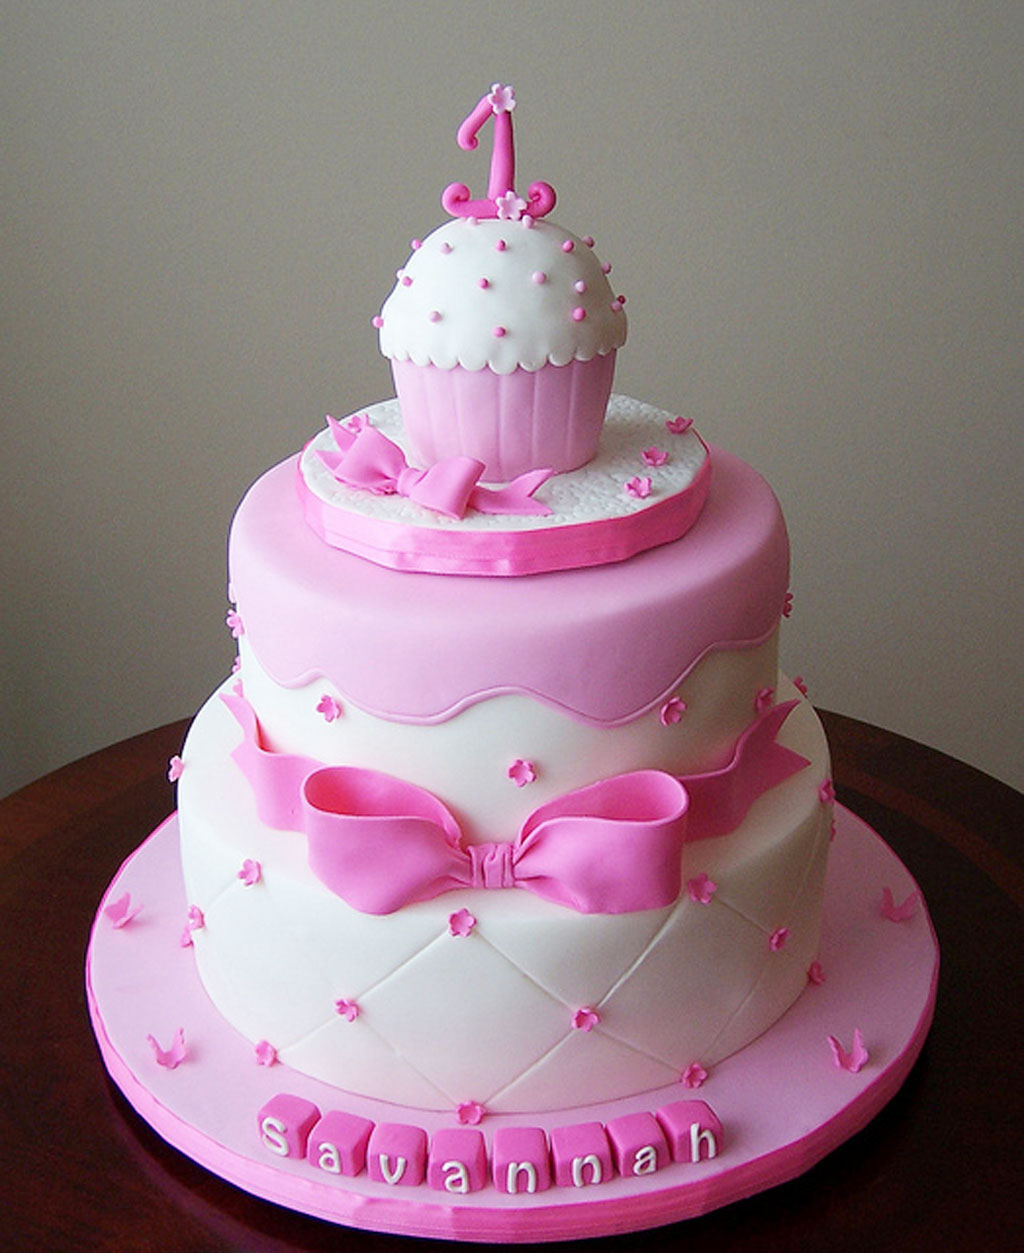 Cake Ideas Birthday Girl : Girls 1st Birthday Cakes Birthday Cake - Cake Ideas by ...